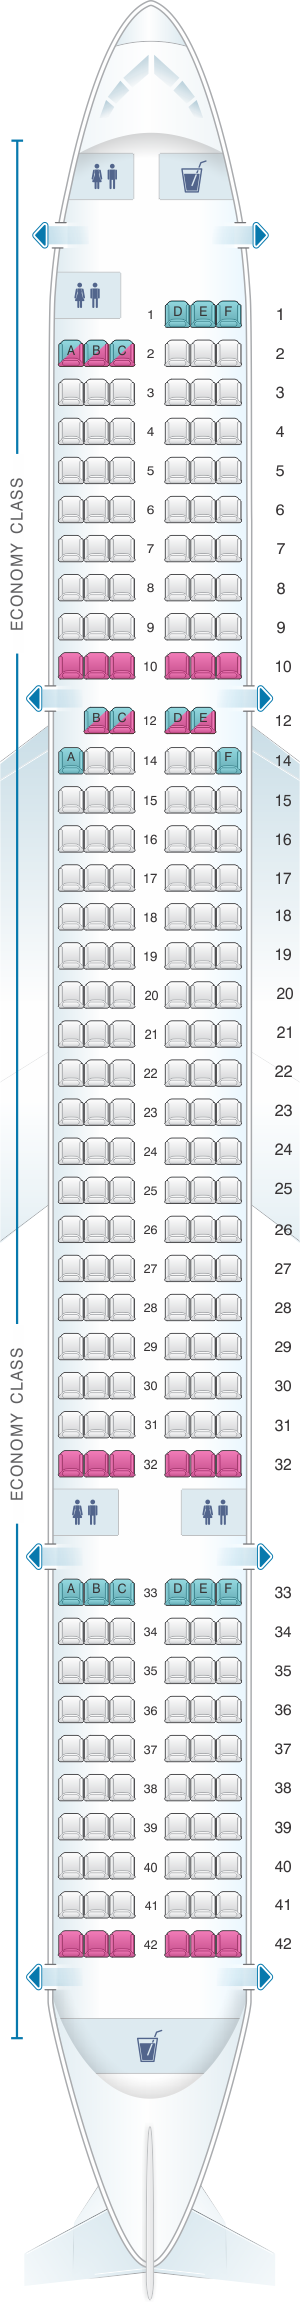 Seat map for Jet2 Boeing B757-200